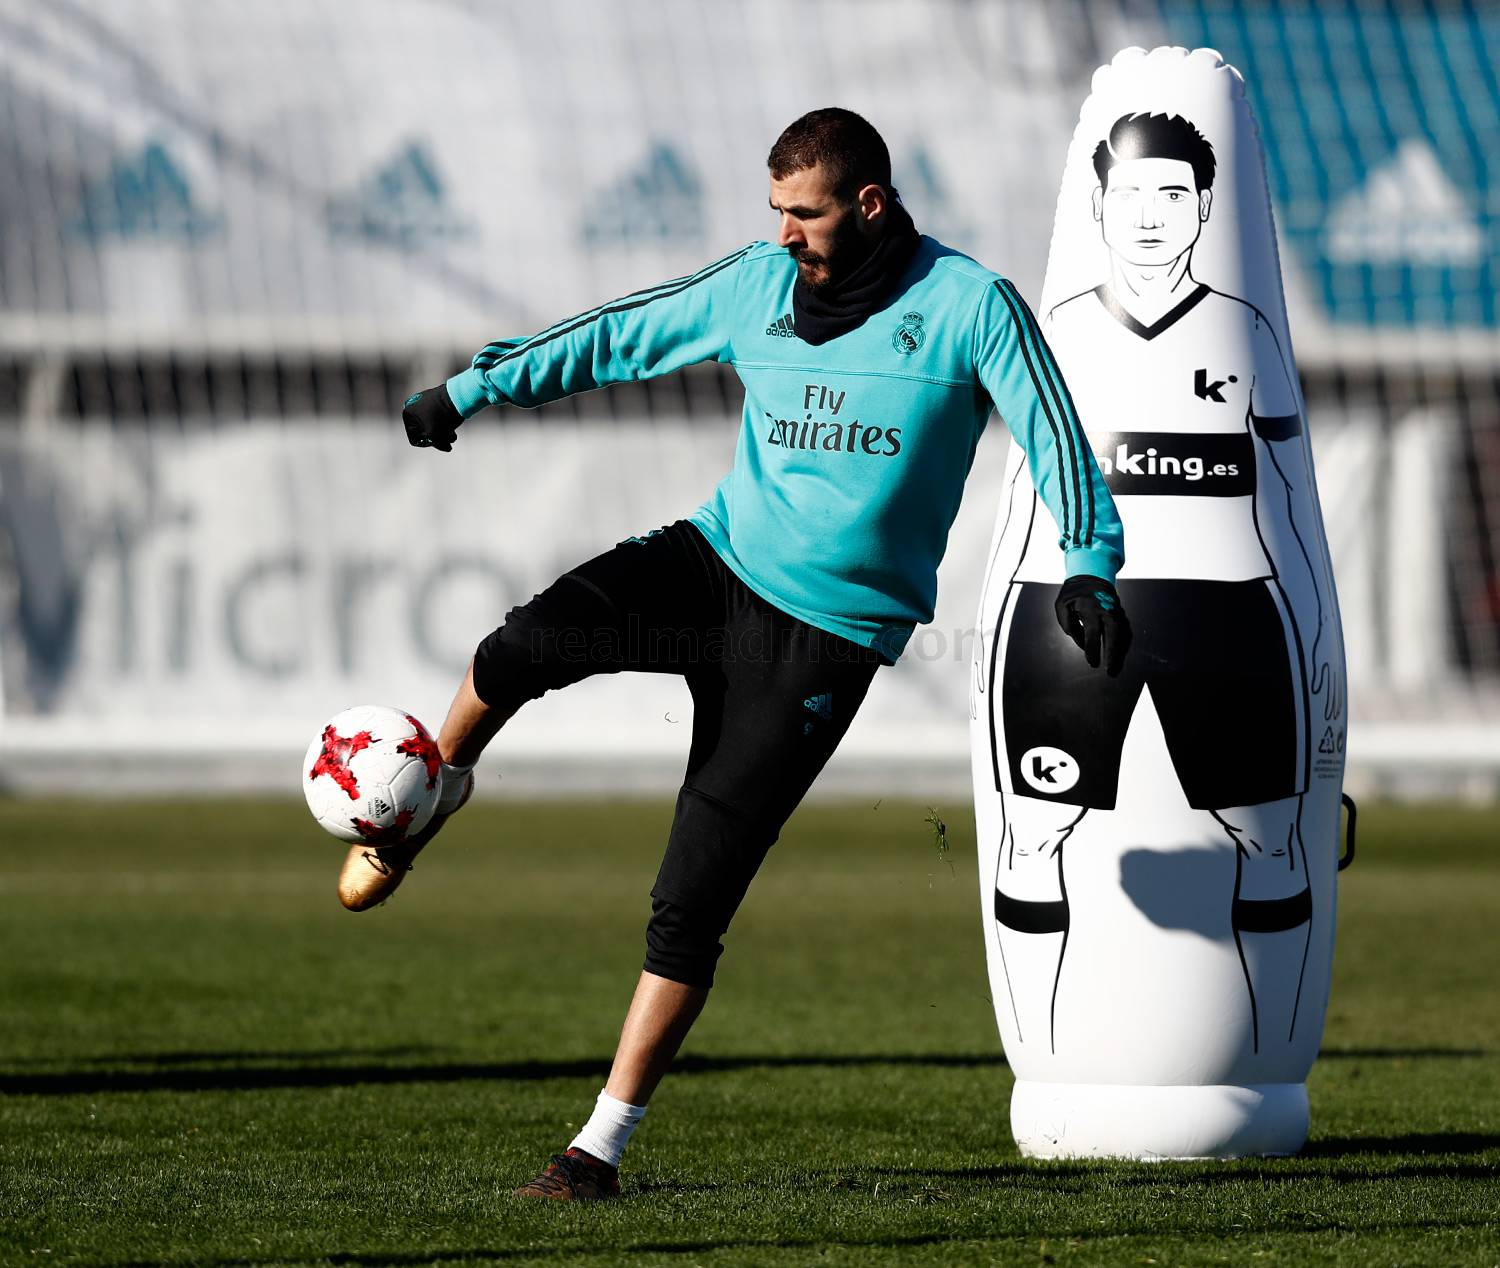 Real Madrid - Entrenamiento del Real Madrid - 22-01-2018